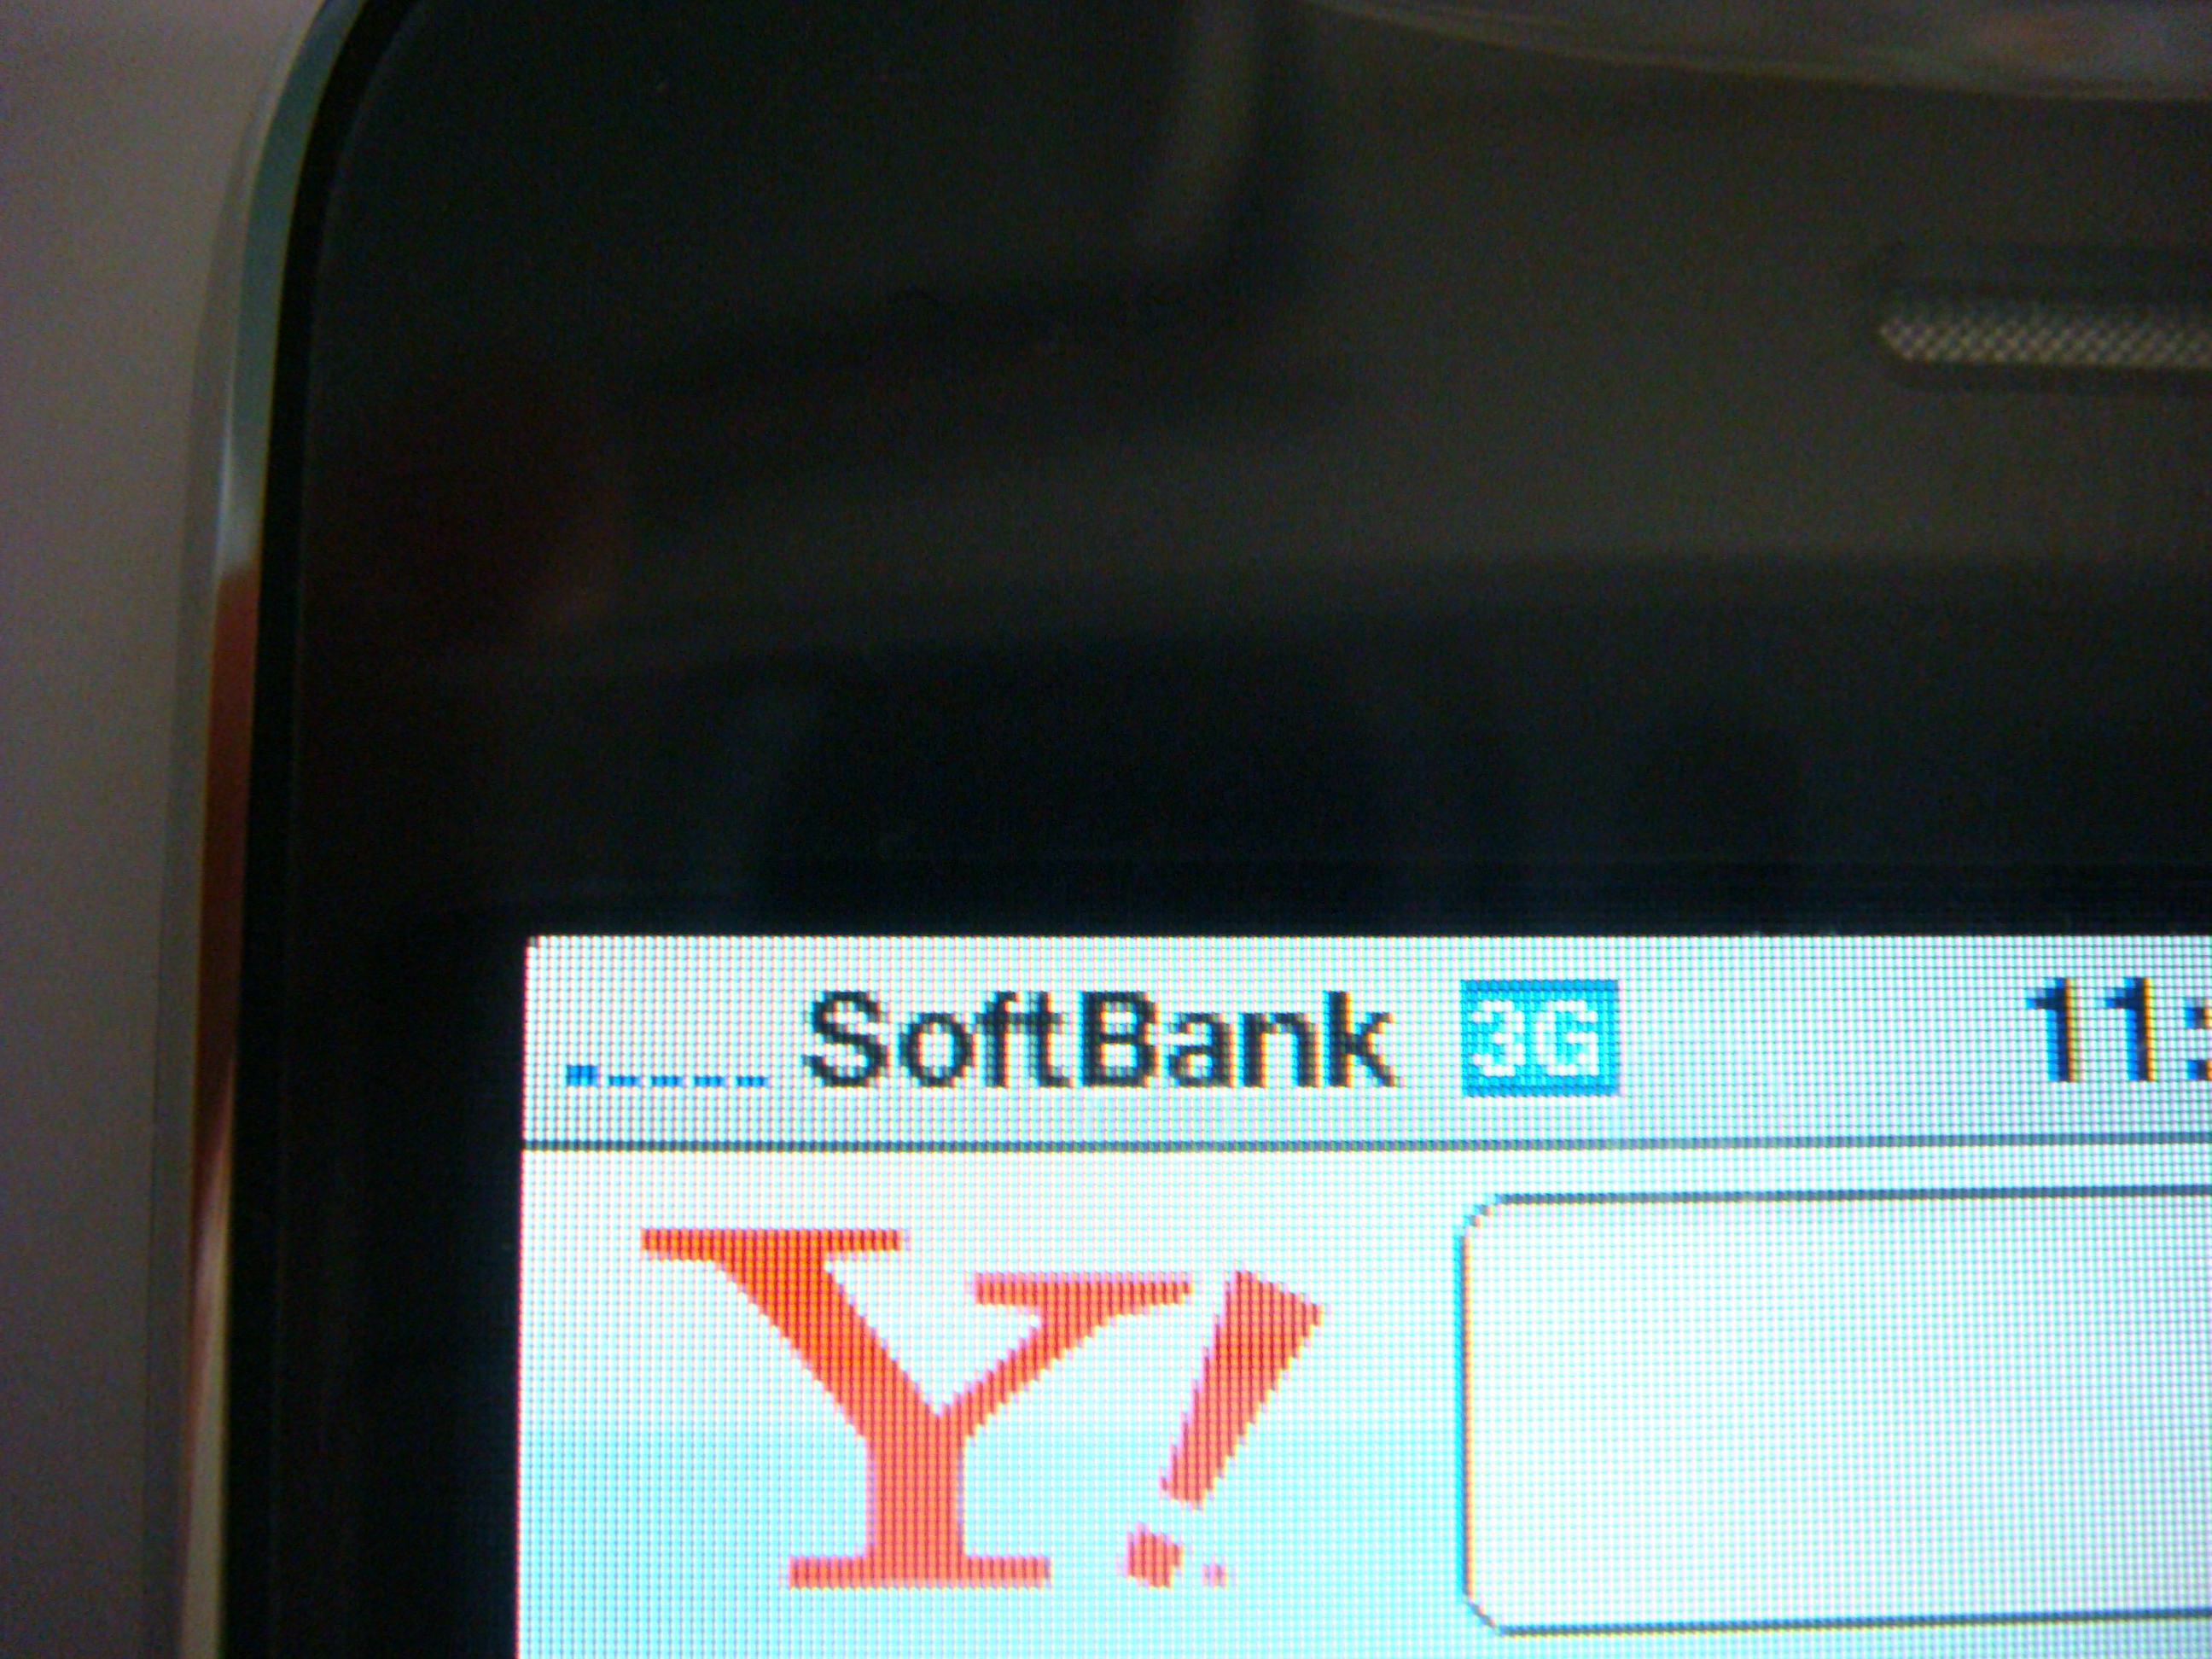 iPhone 3G SoftBank 3G